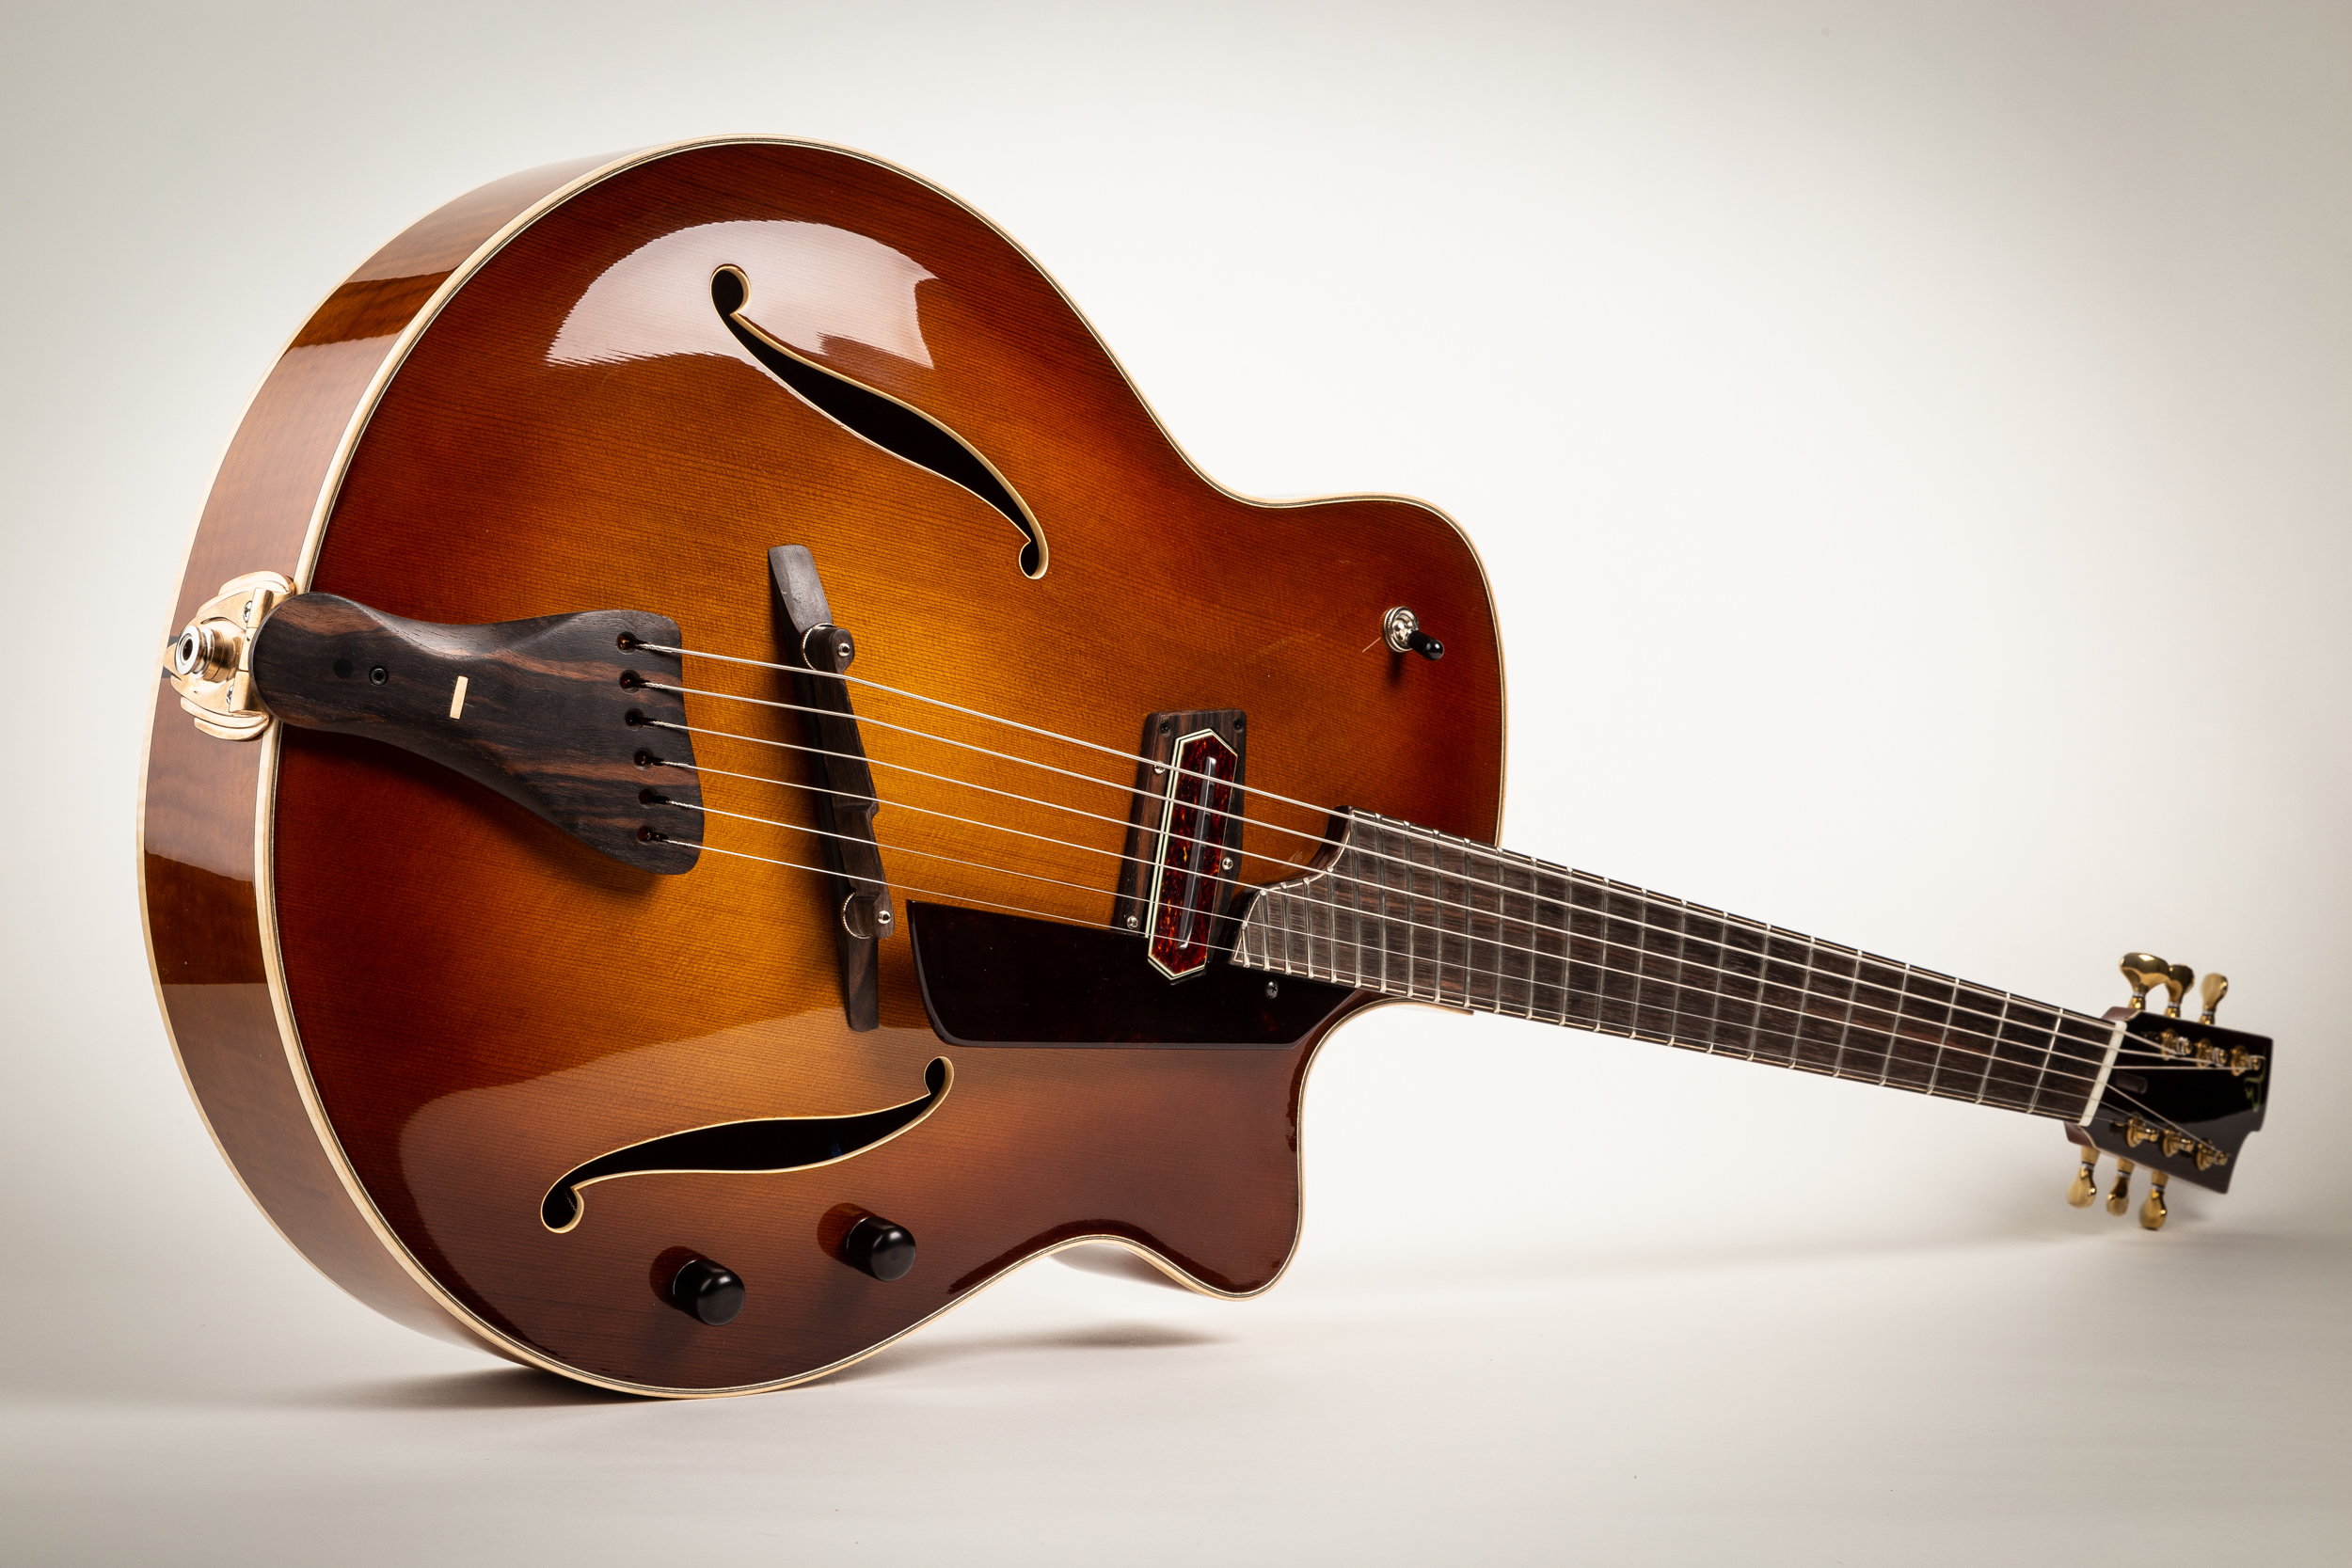 Multi-scale jazz box with sunburst cedar top, maple back & sides. Check this guitar out at  Bluedog Guitars in Vancouver.